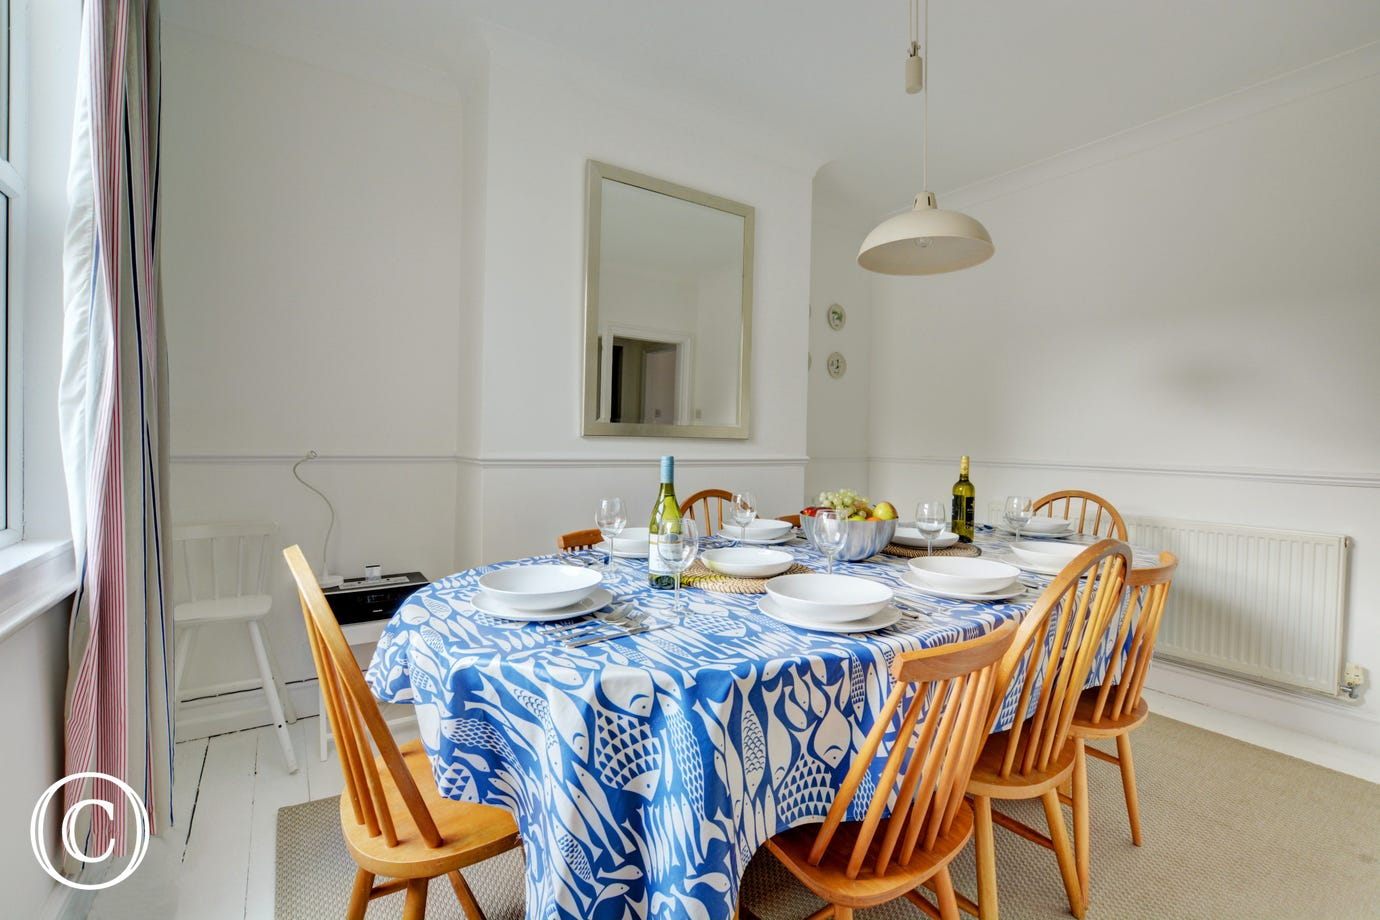 Dining table seating for all guests